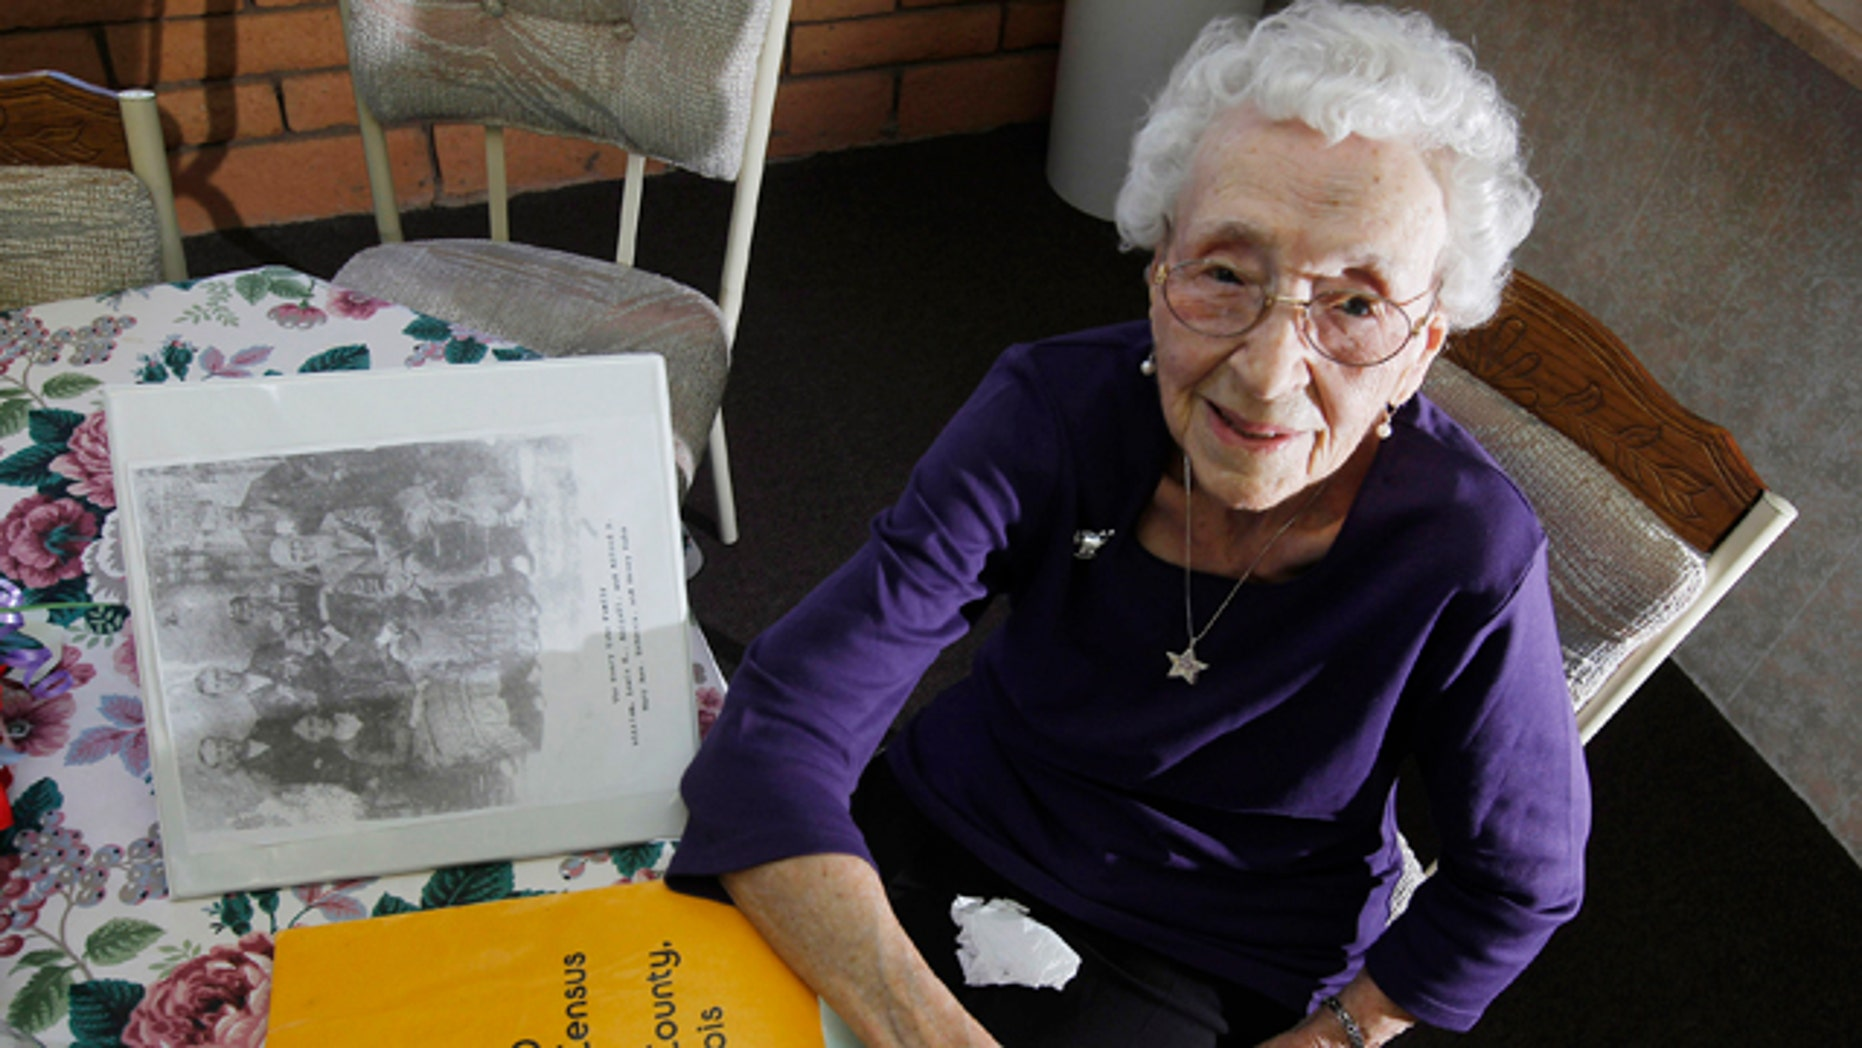 March 30, 2012: Verla Morris, who will turn 100 later this year, poses for a photograph as she goes through some of her family census data from the 19th and 20th centuries at her local residential senior center in Chandler, Ariz.